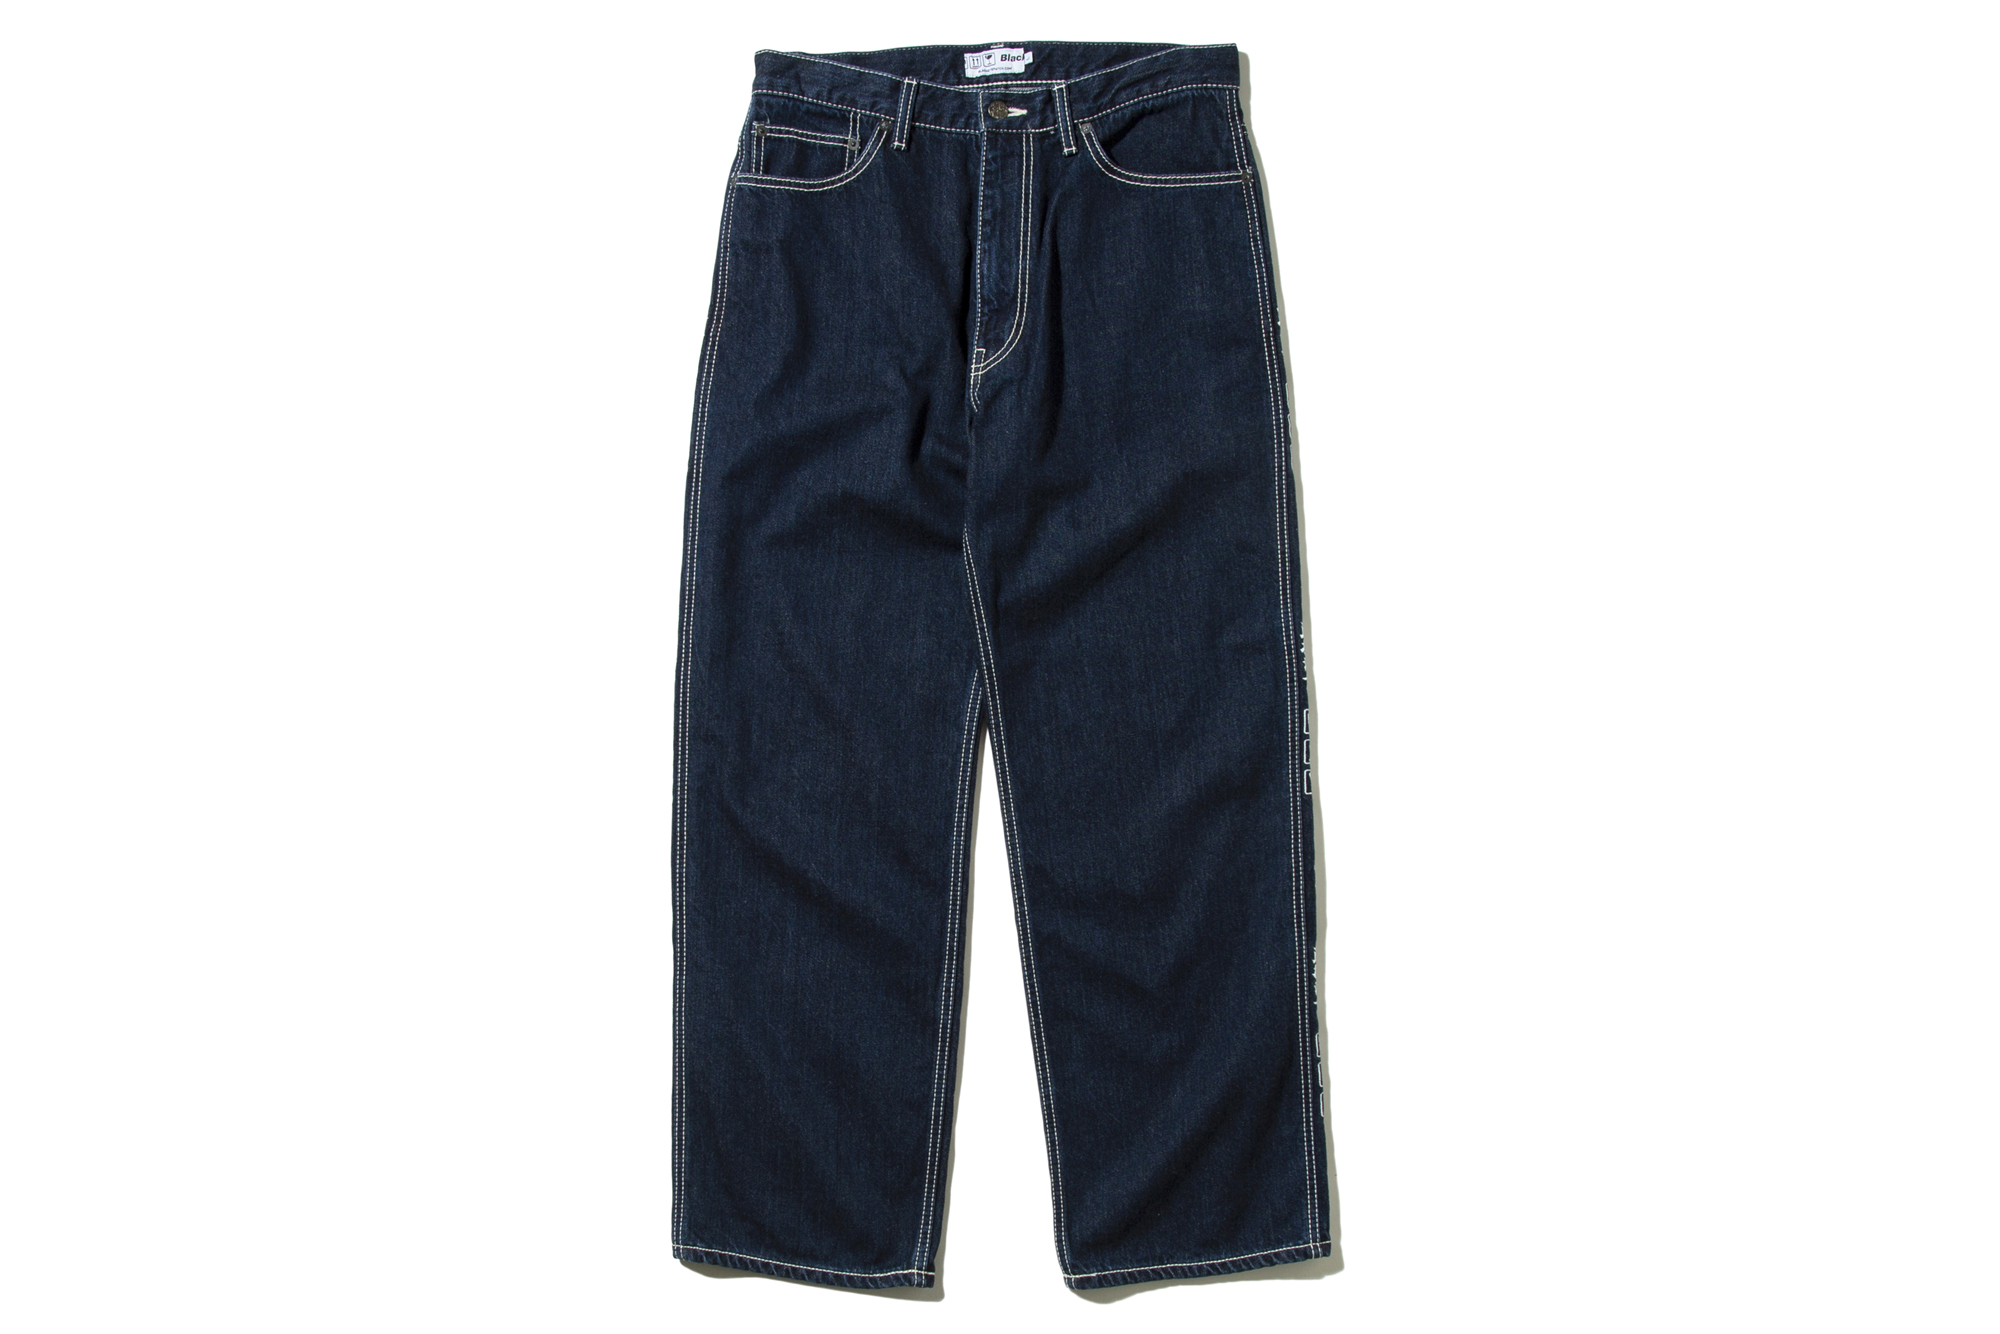 handle-with-care-denim-pants-indigo_p2